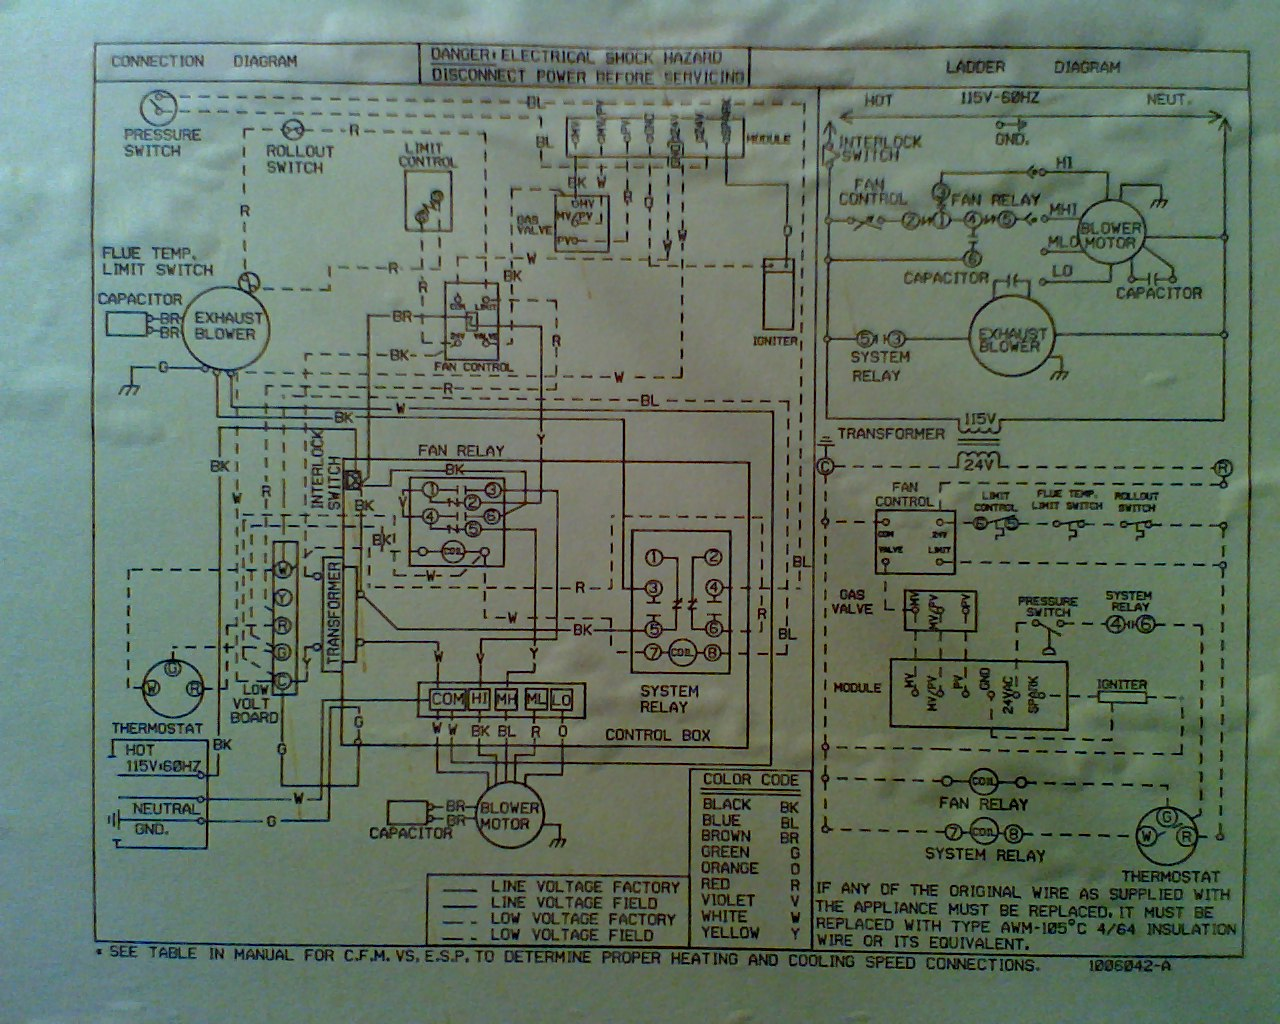 2009 11 20_231603_1120091711a air conditioner y wire grihon com ac, coolers & devices tempstar 2200 air conditioner wiring diagram at cita.asia